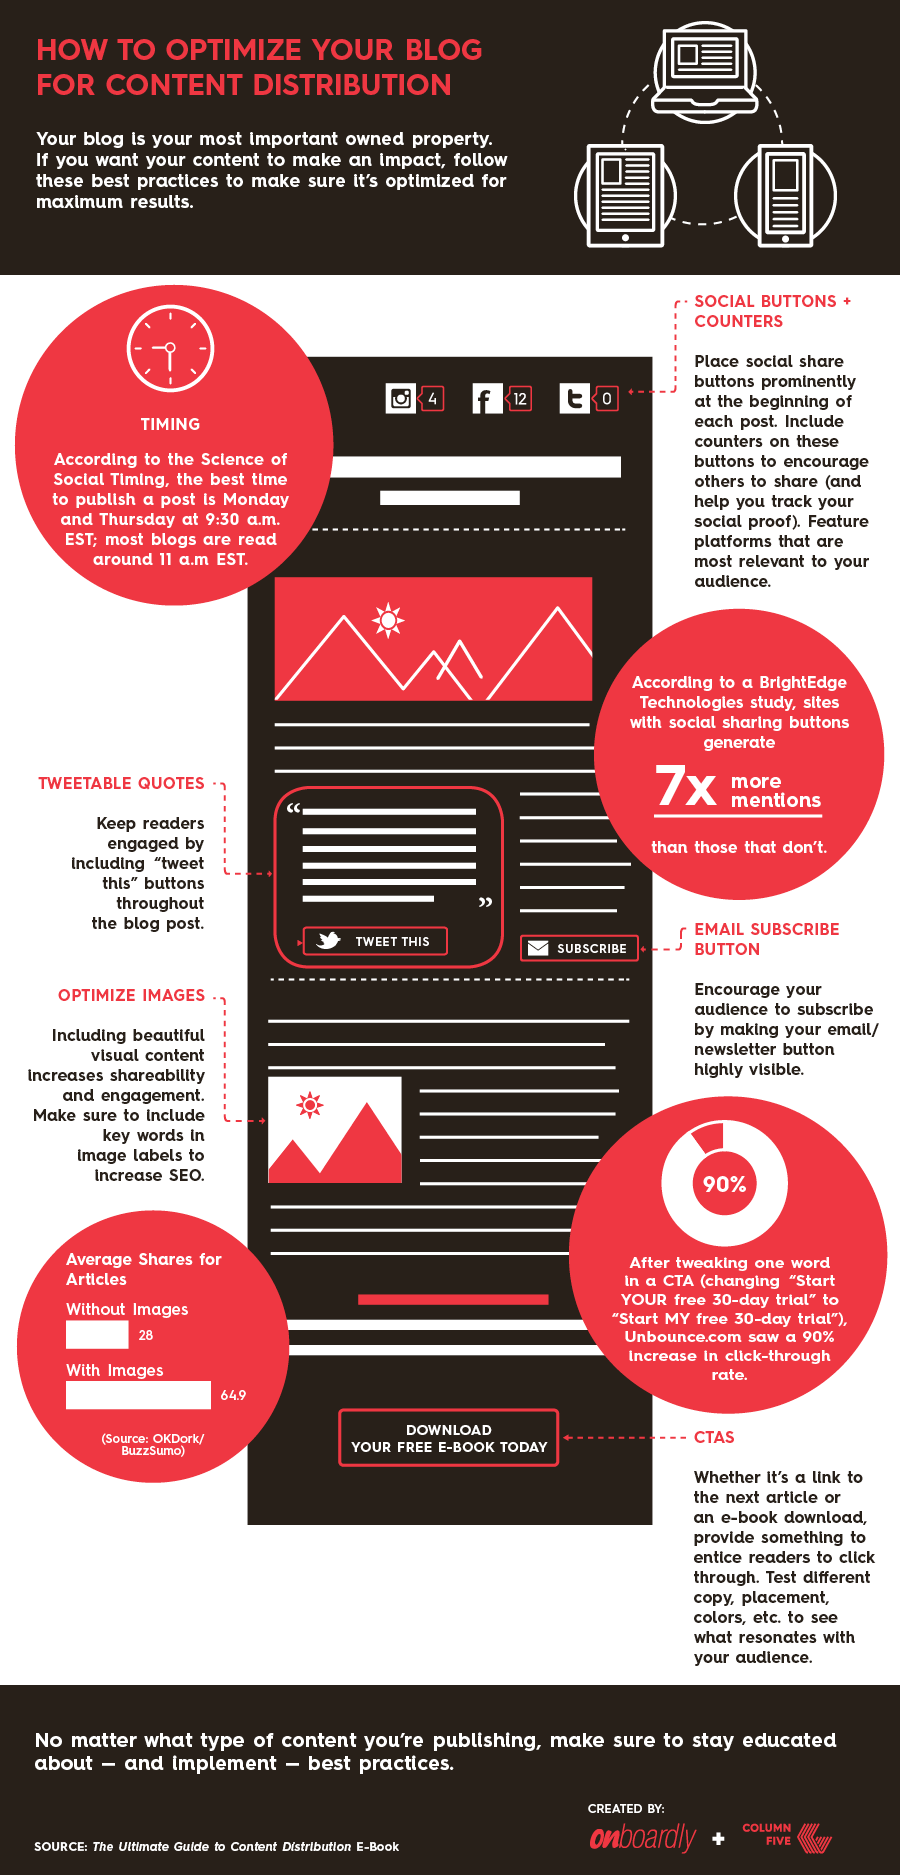 Here's How You Should be Optimizing Your Blog for ROI (Infographic)